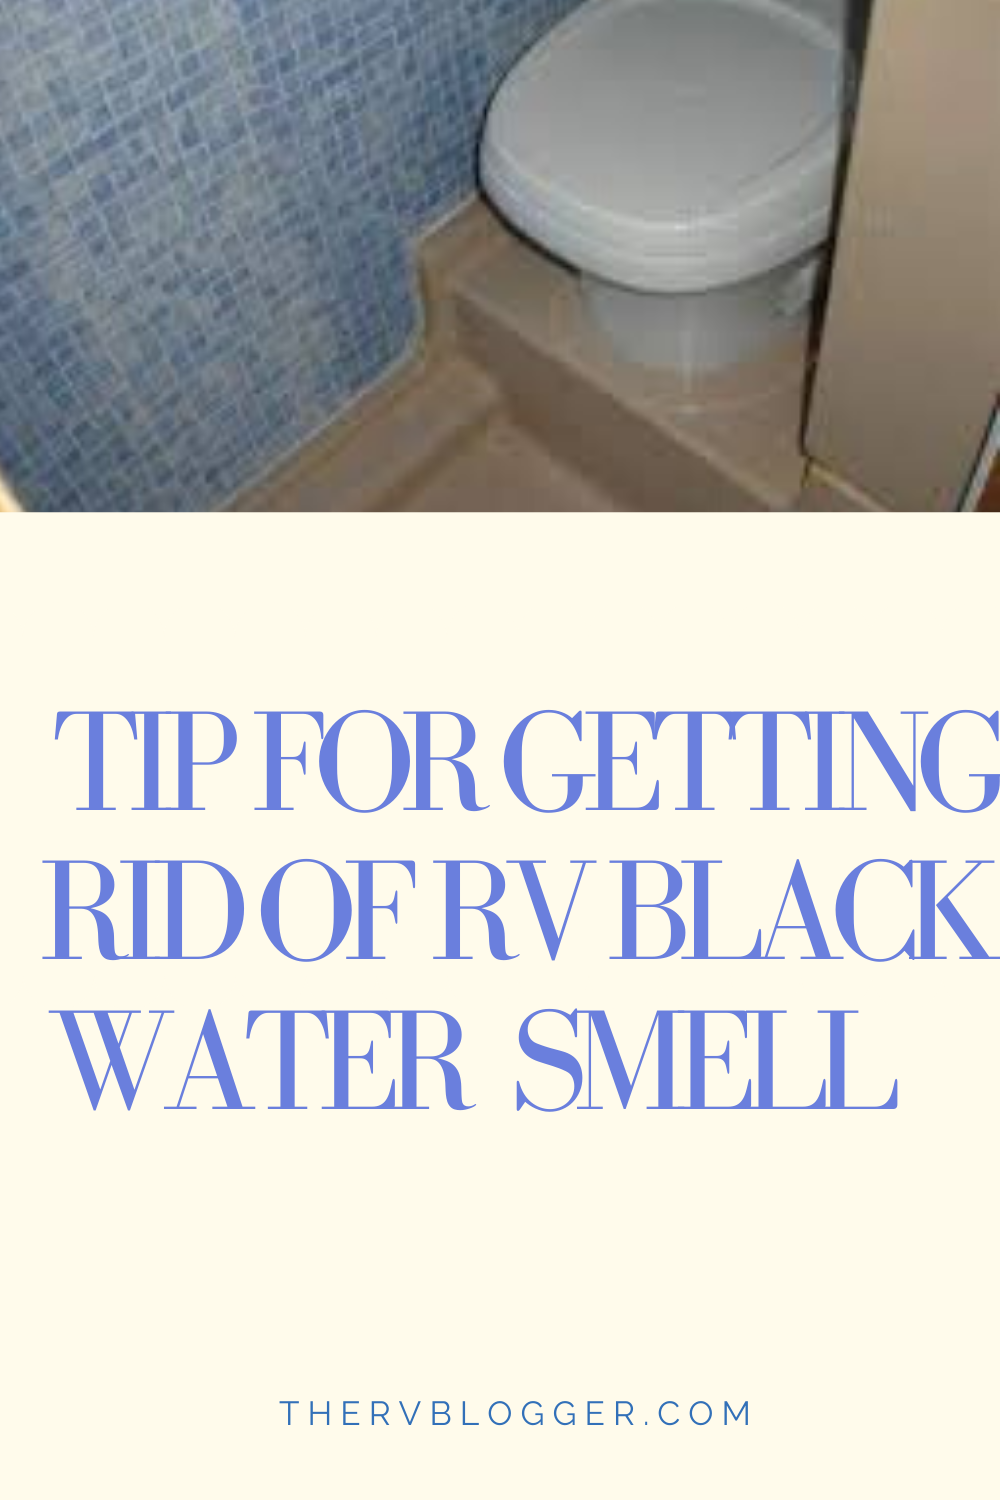 29c1f2fe66f8133bbc8b0a53b65cb894 - How To Get Rid Of Smell In Camper Bathroom